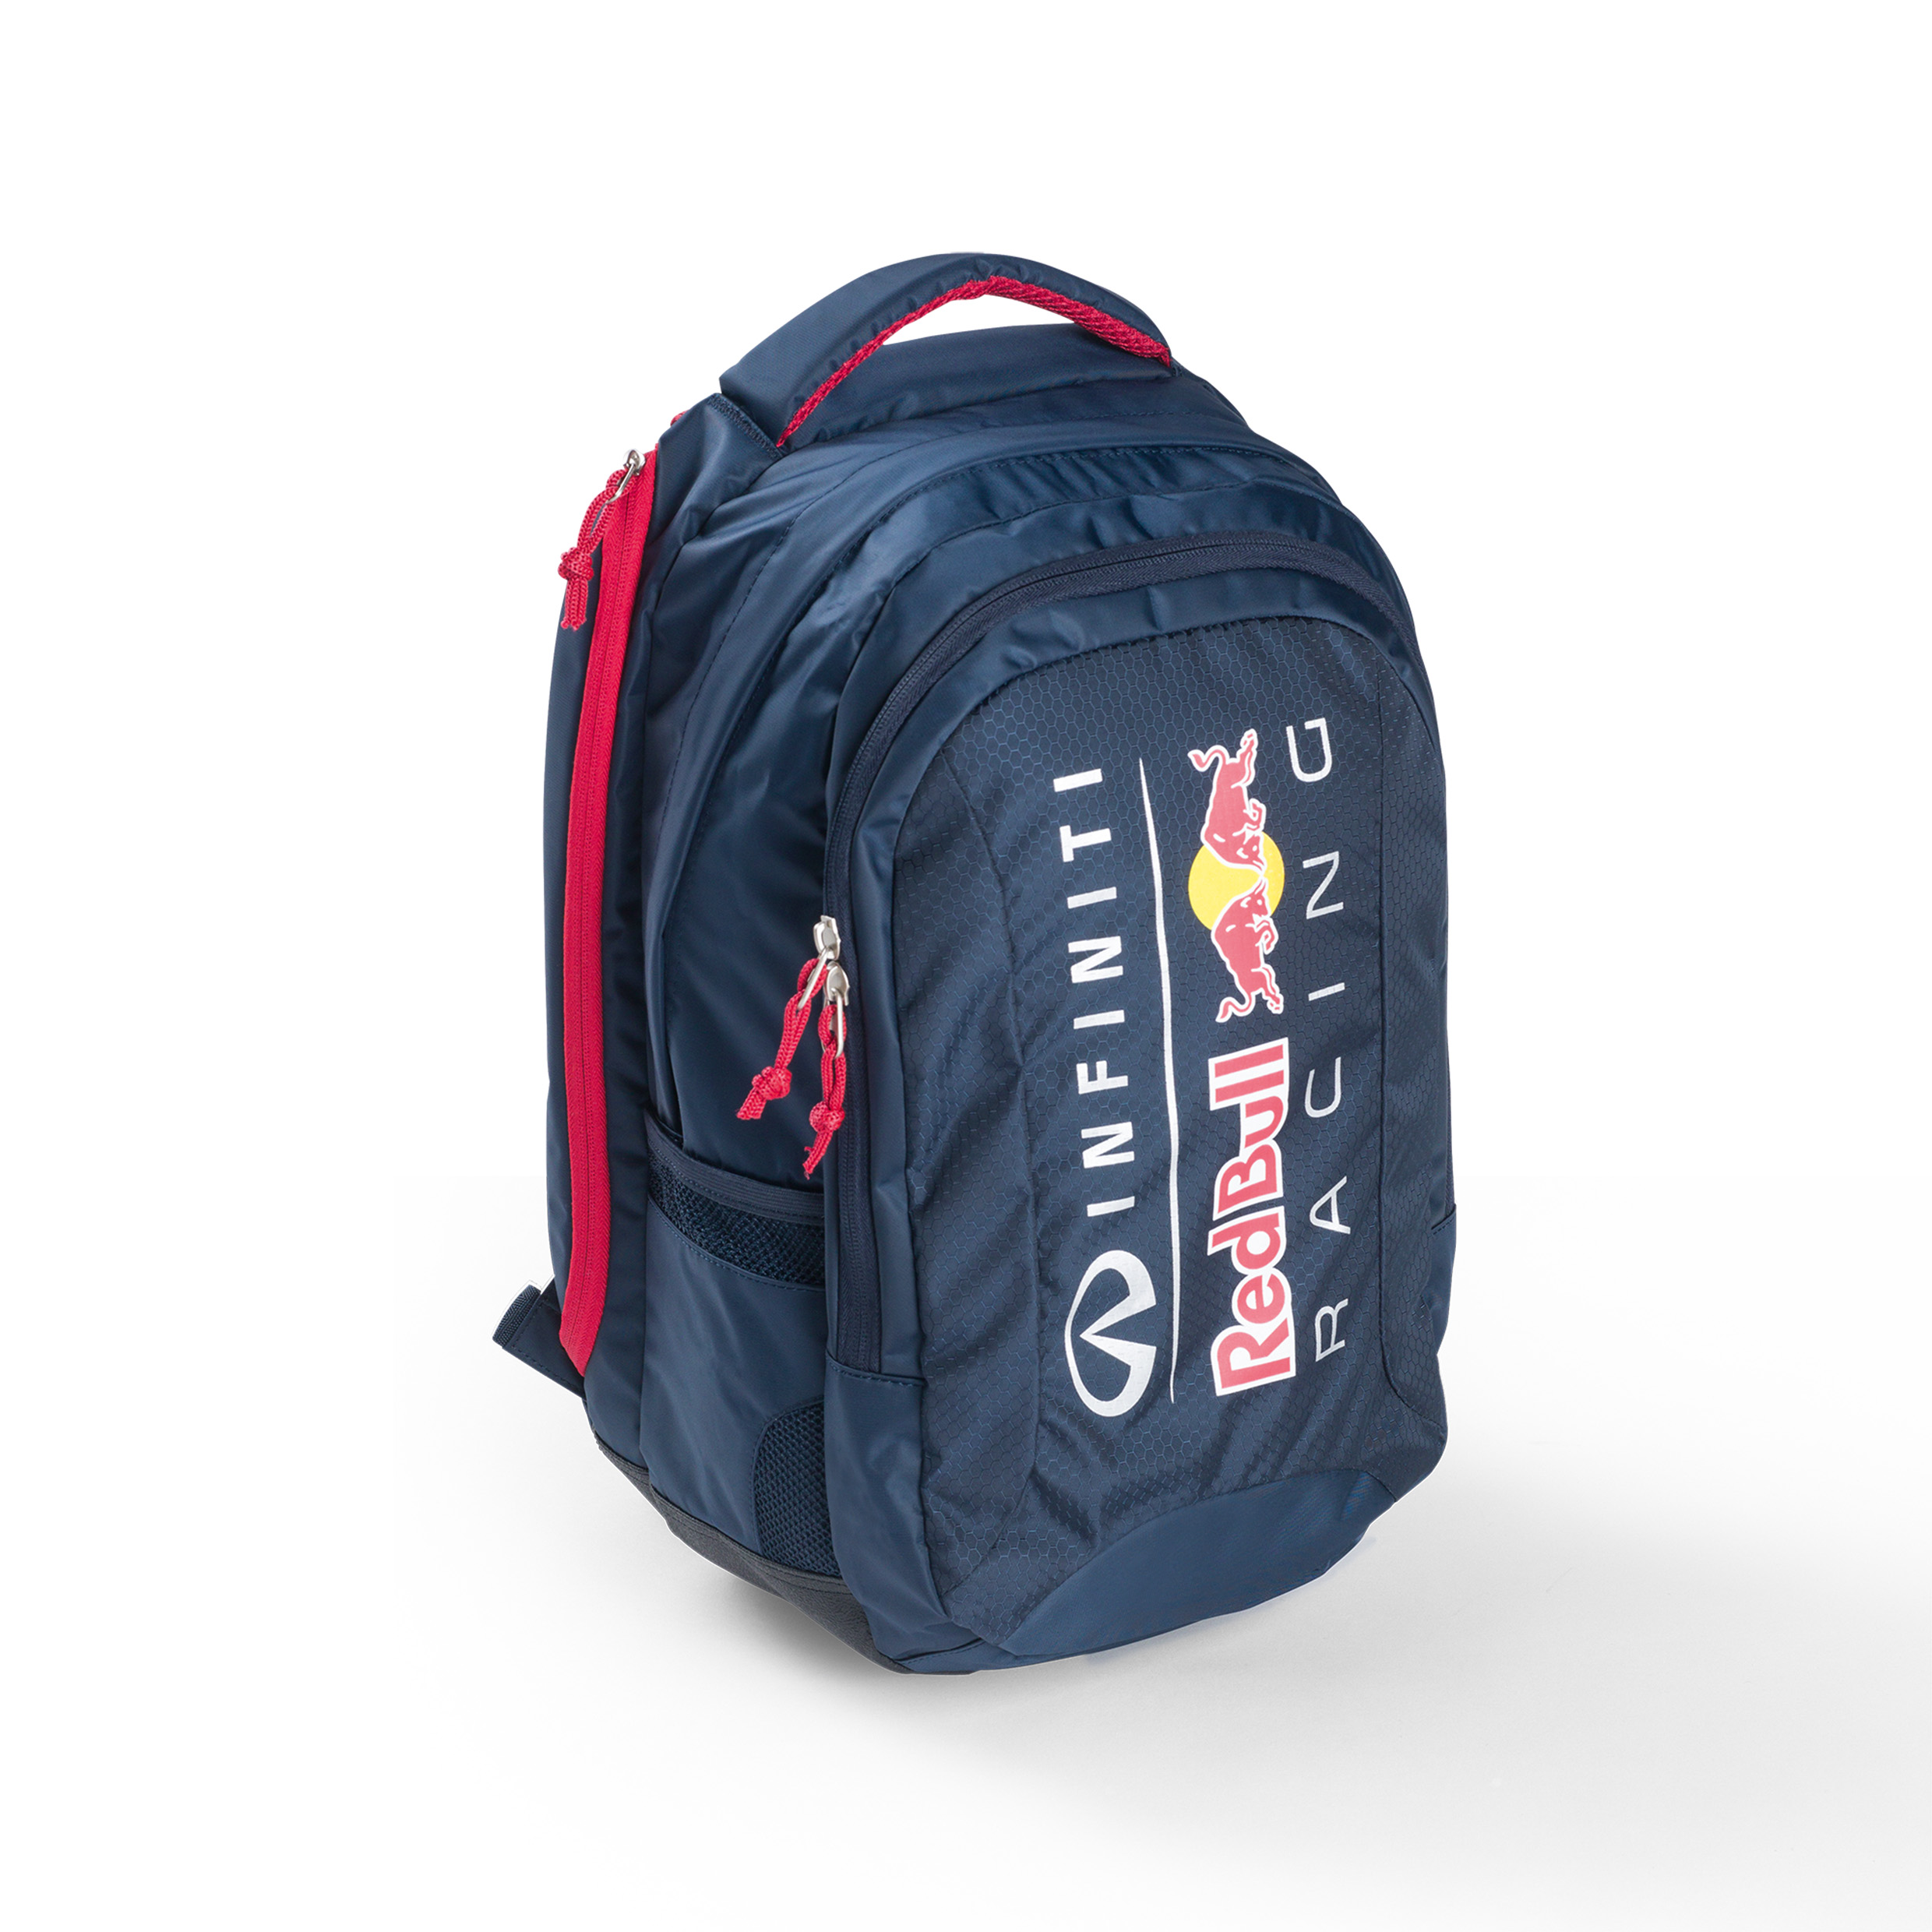 Infiniti Red Bull Racing Backpack